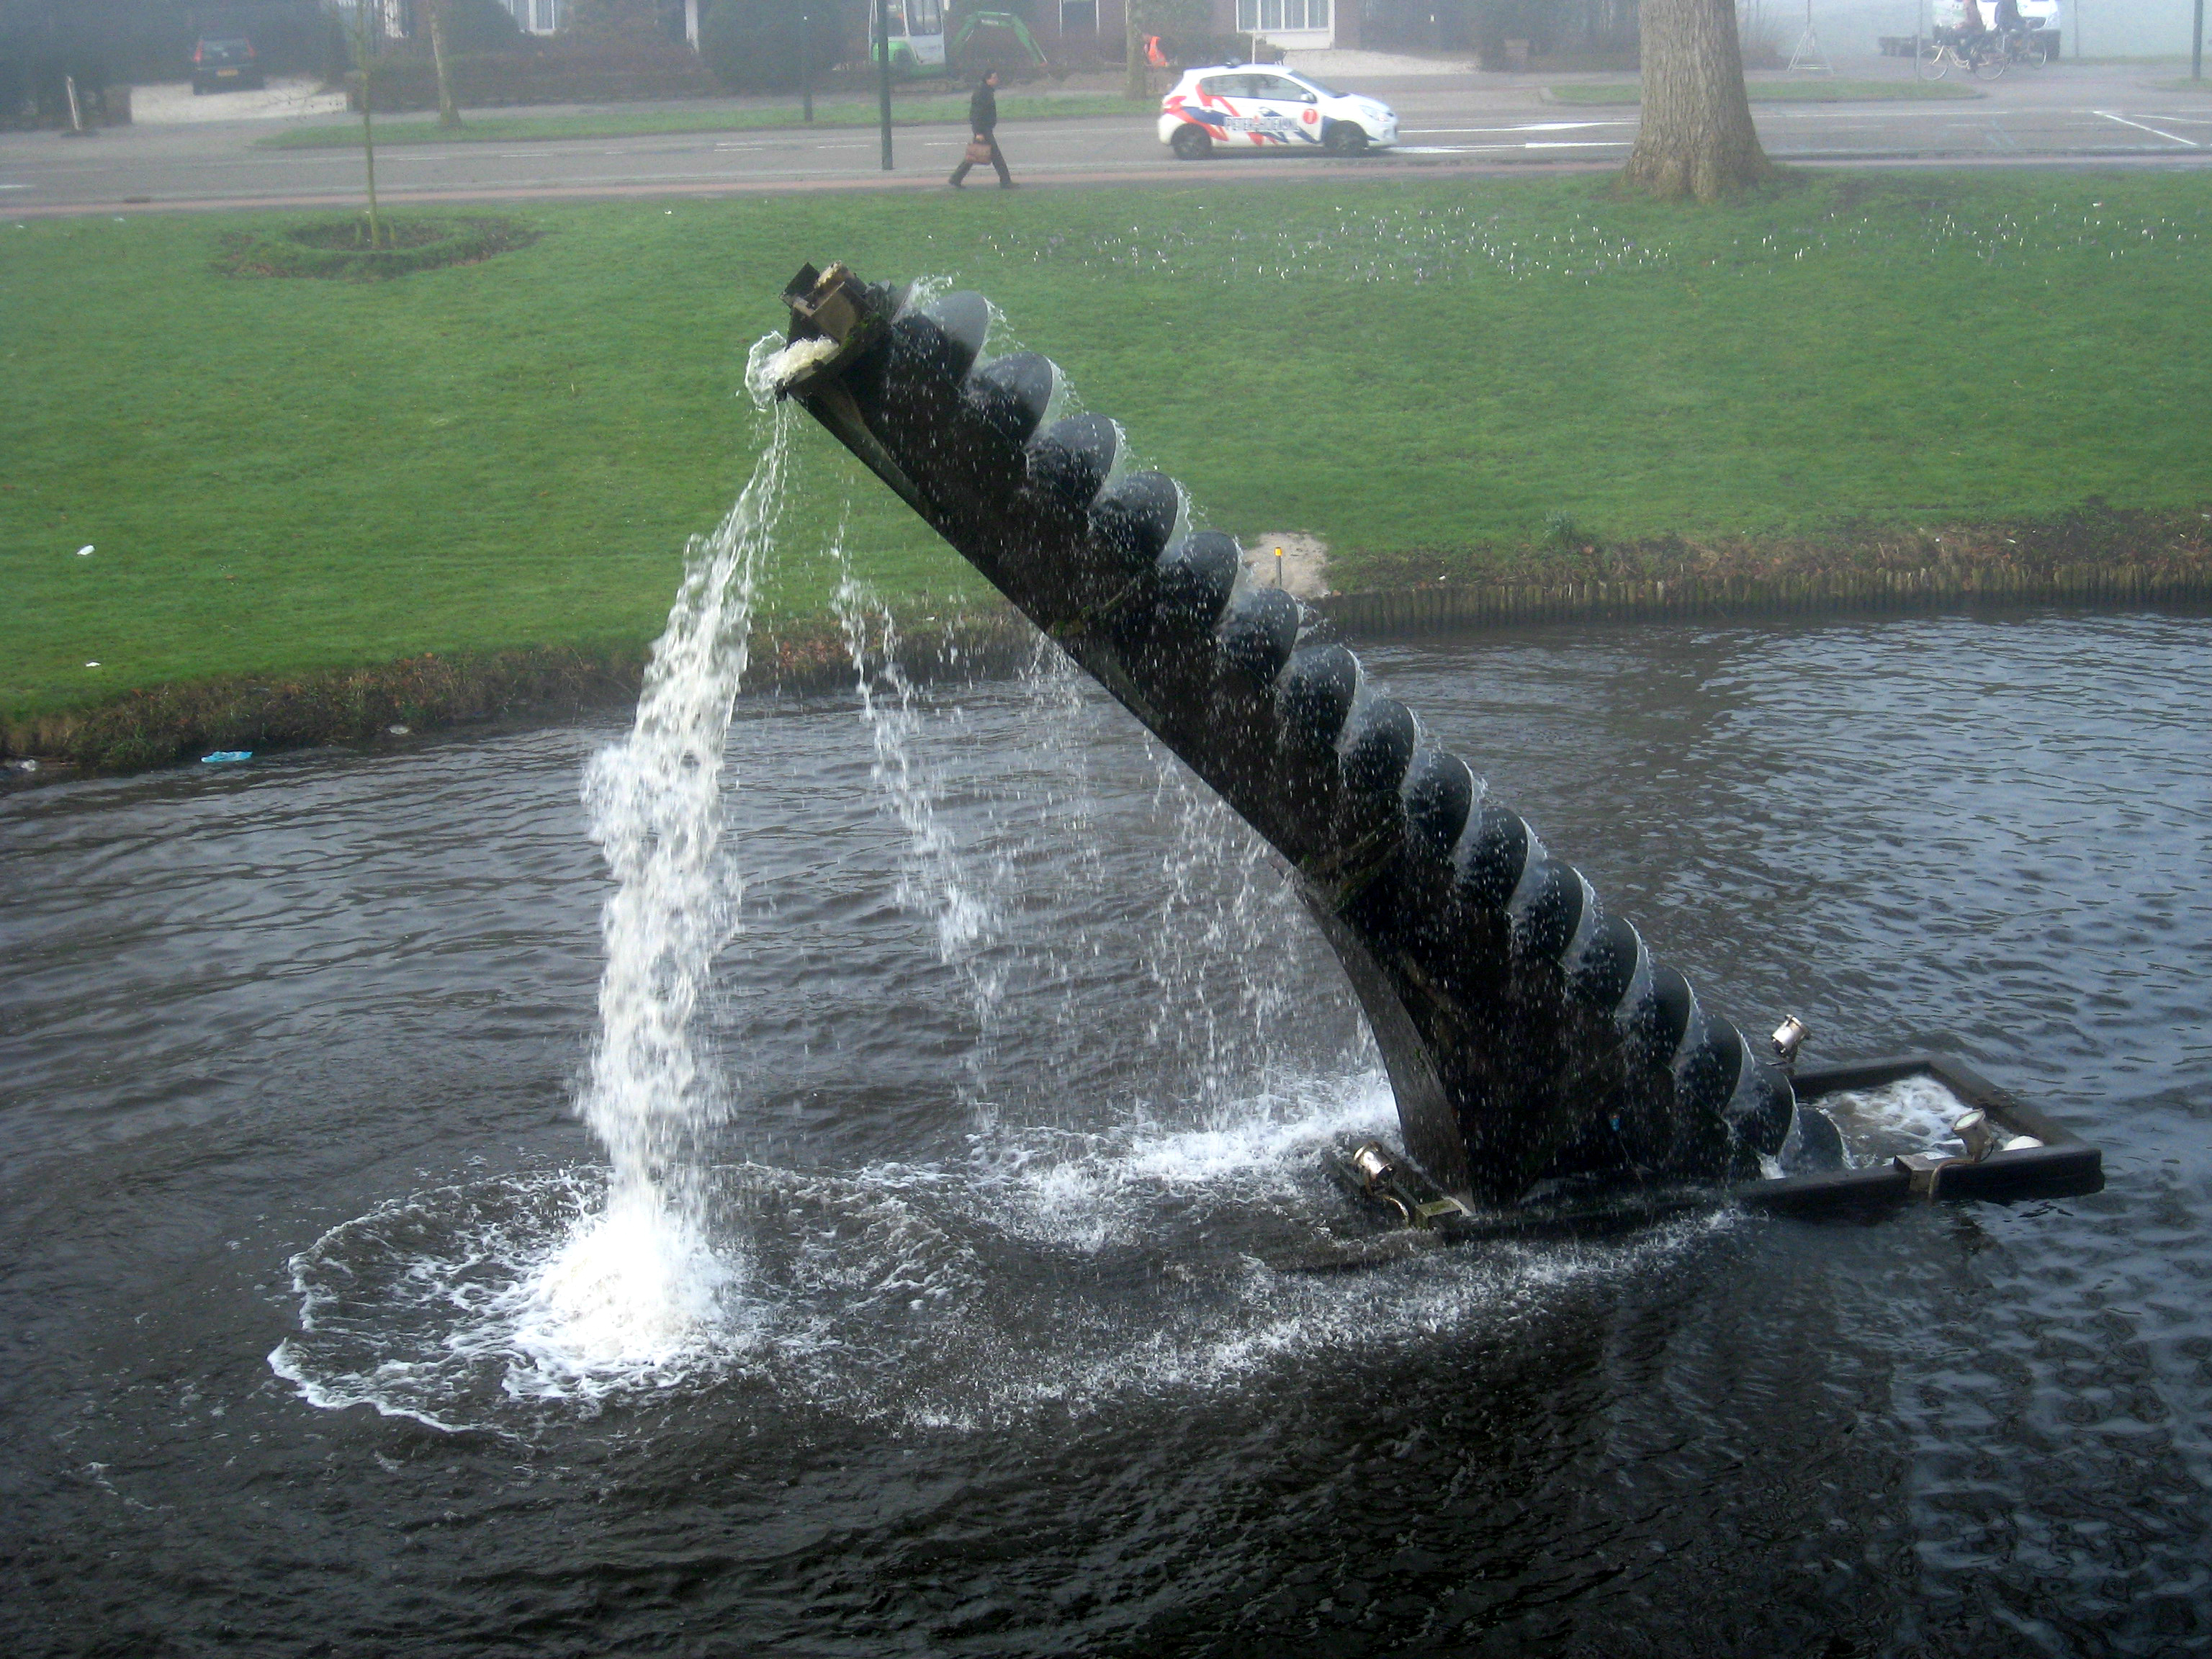 Archimedes Screw Sculpture Transporting Water Scienceimages